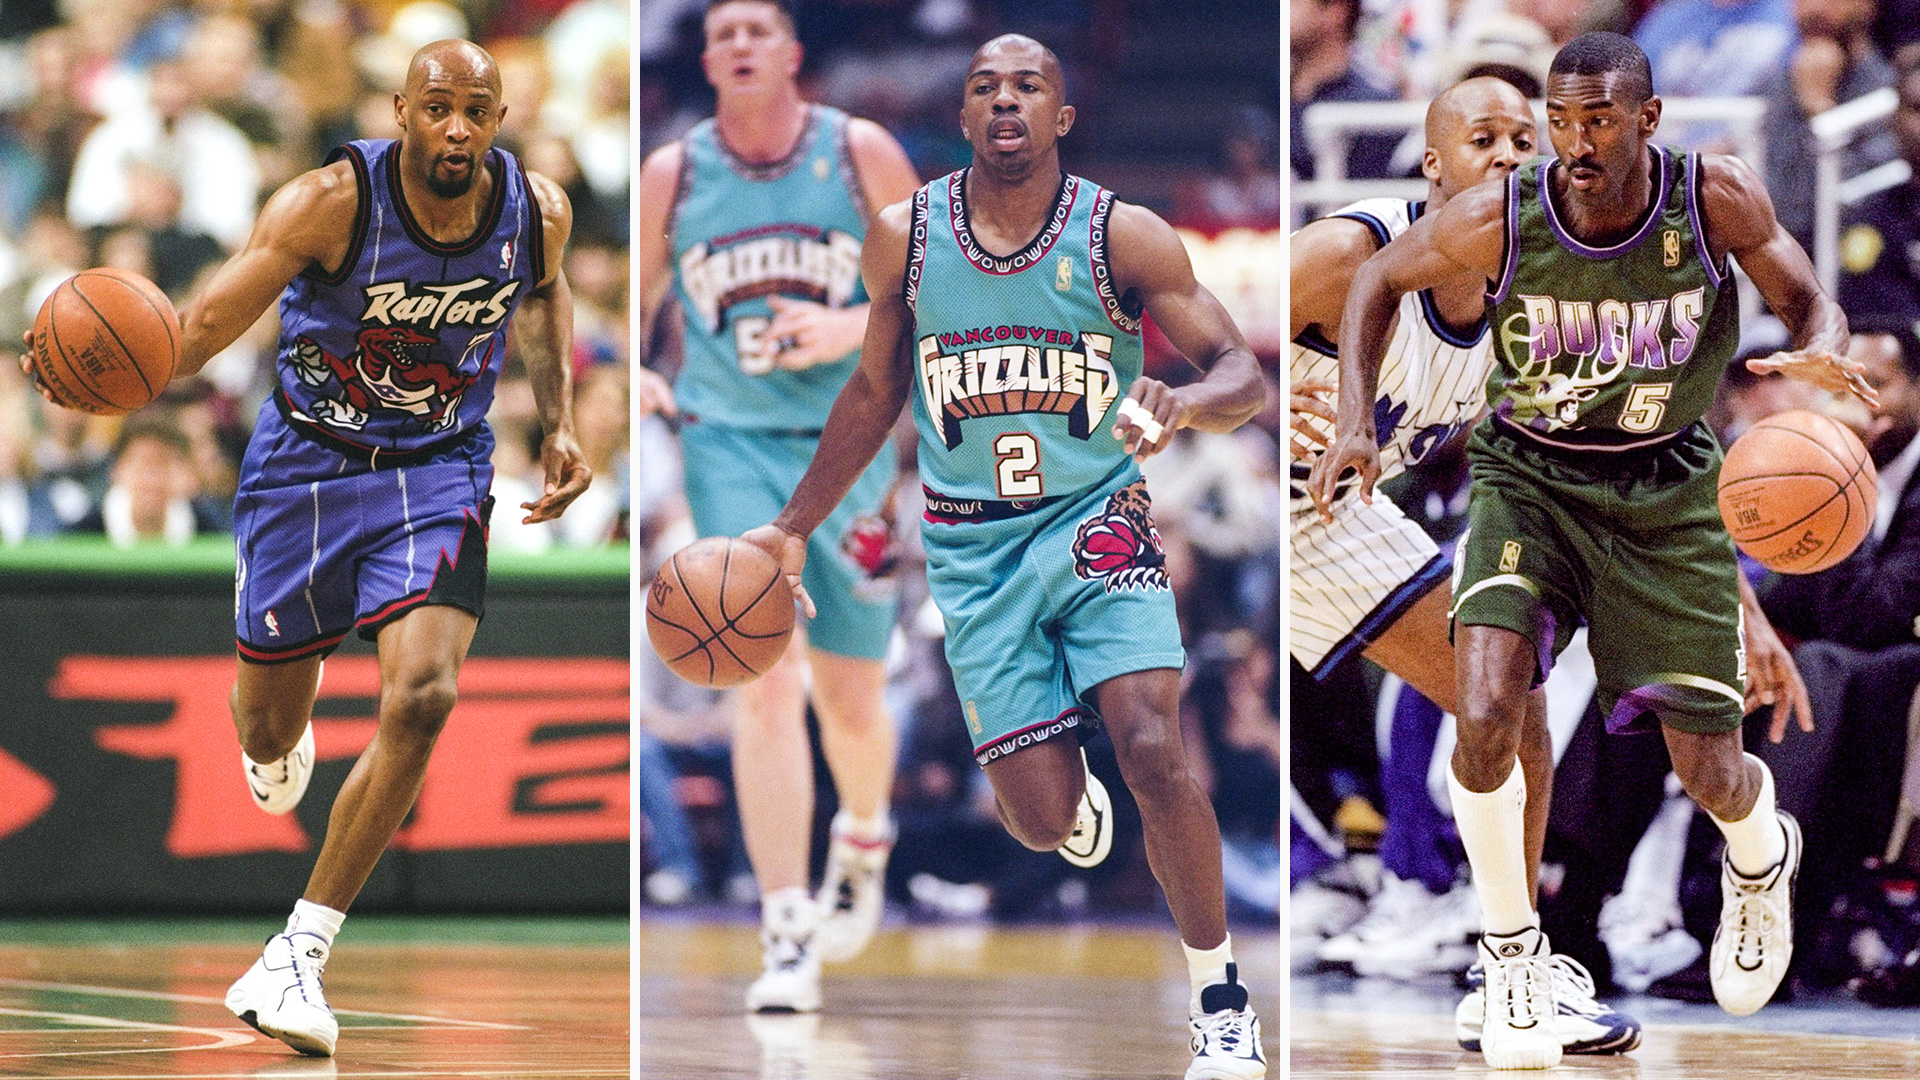 1990s NBA uniforms 803b5d2f3